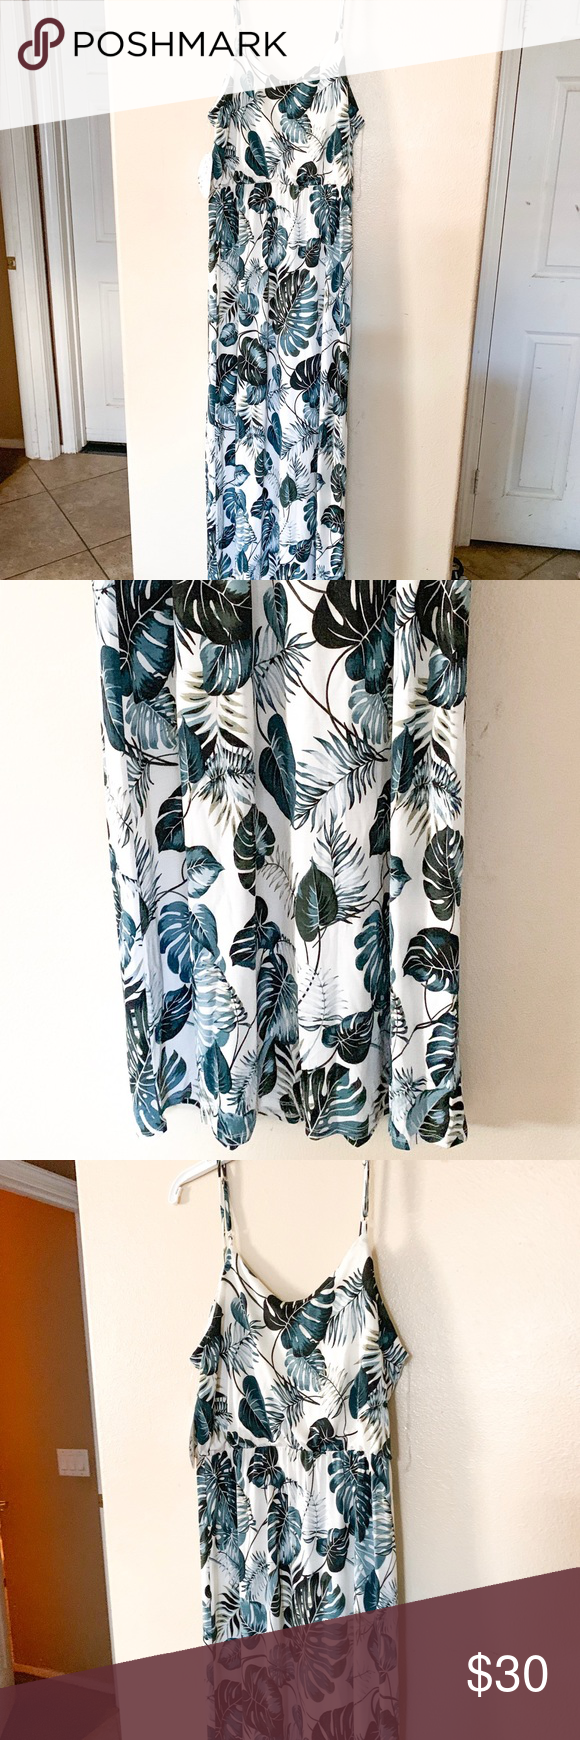 ✨ Tropical Print Maxi Dress New with tags! Brand is Naïf. This dress is beautiful and it's white with a tropical print of blues and greens. It'…